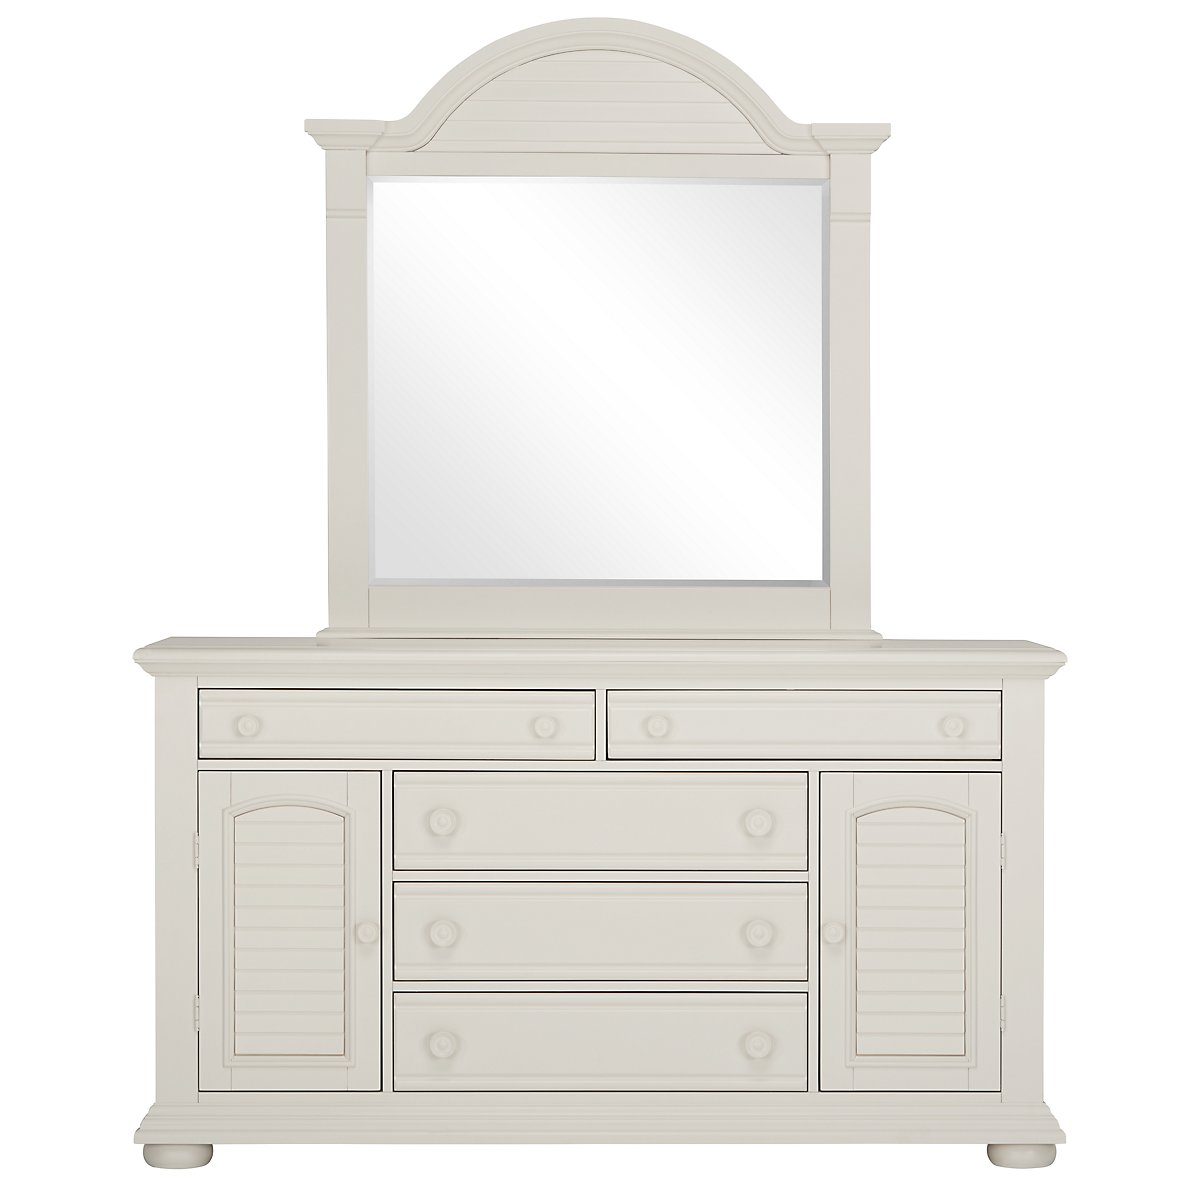 city furniture quinn white large dresser mirror. Black Bedroom Furniture Sets. Home Design Ideas